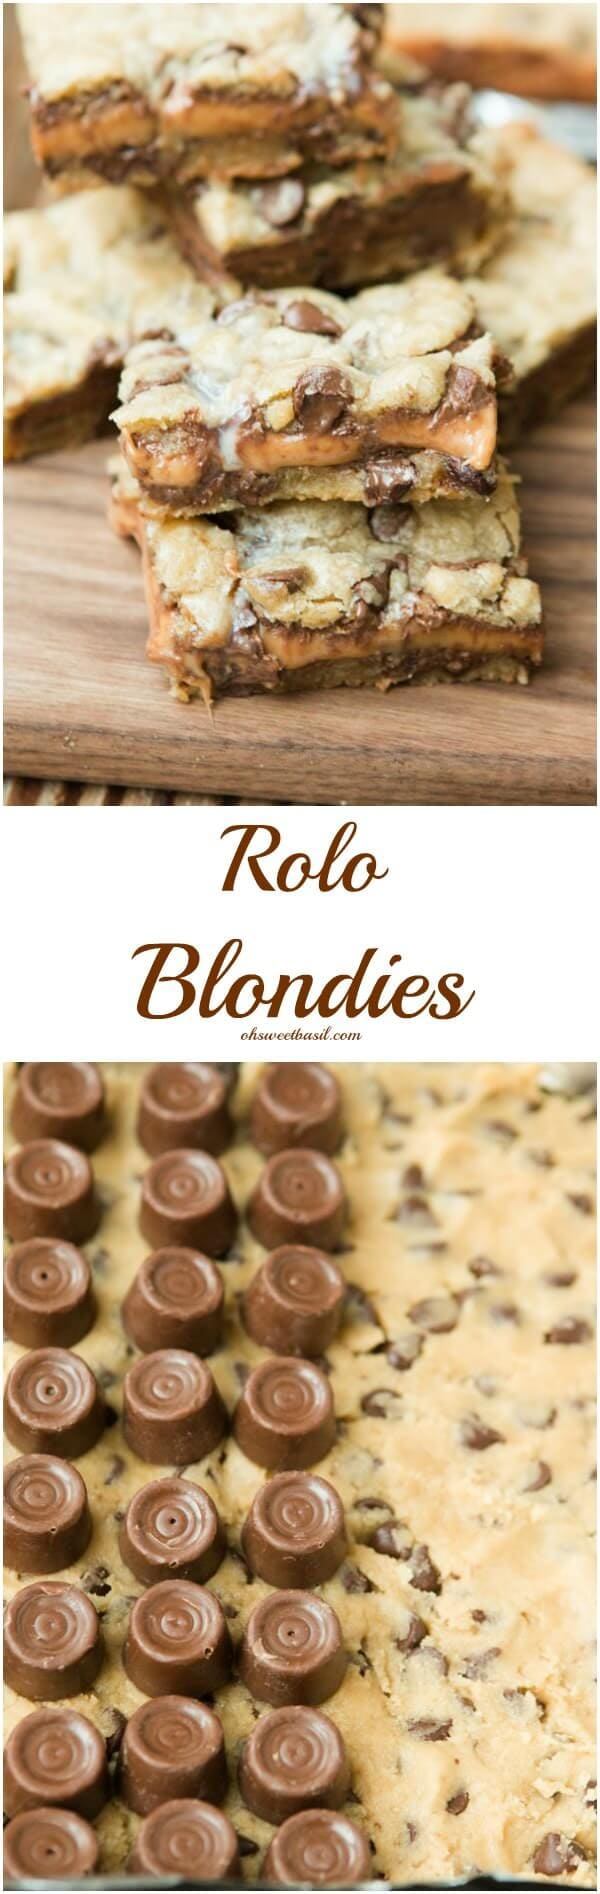 Holy Deliciousness! Rolo Blondies ohsweetbasil.com